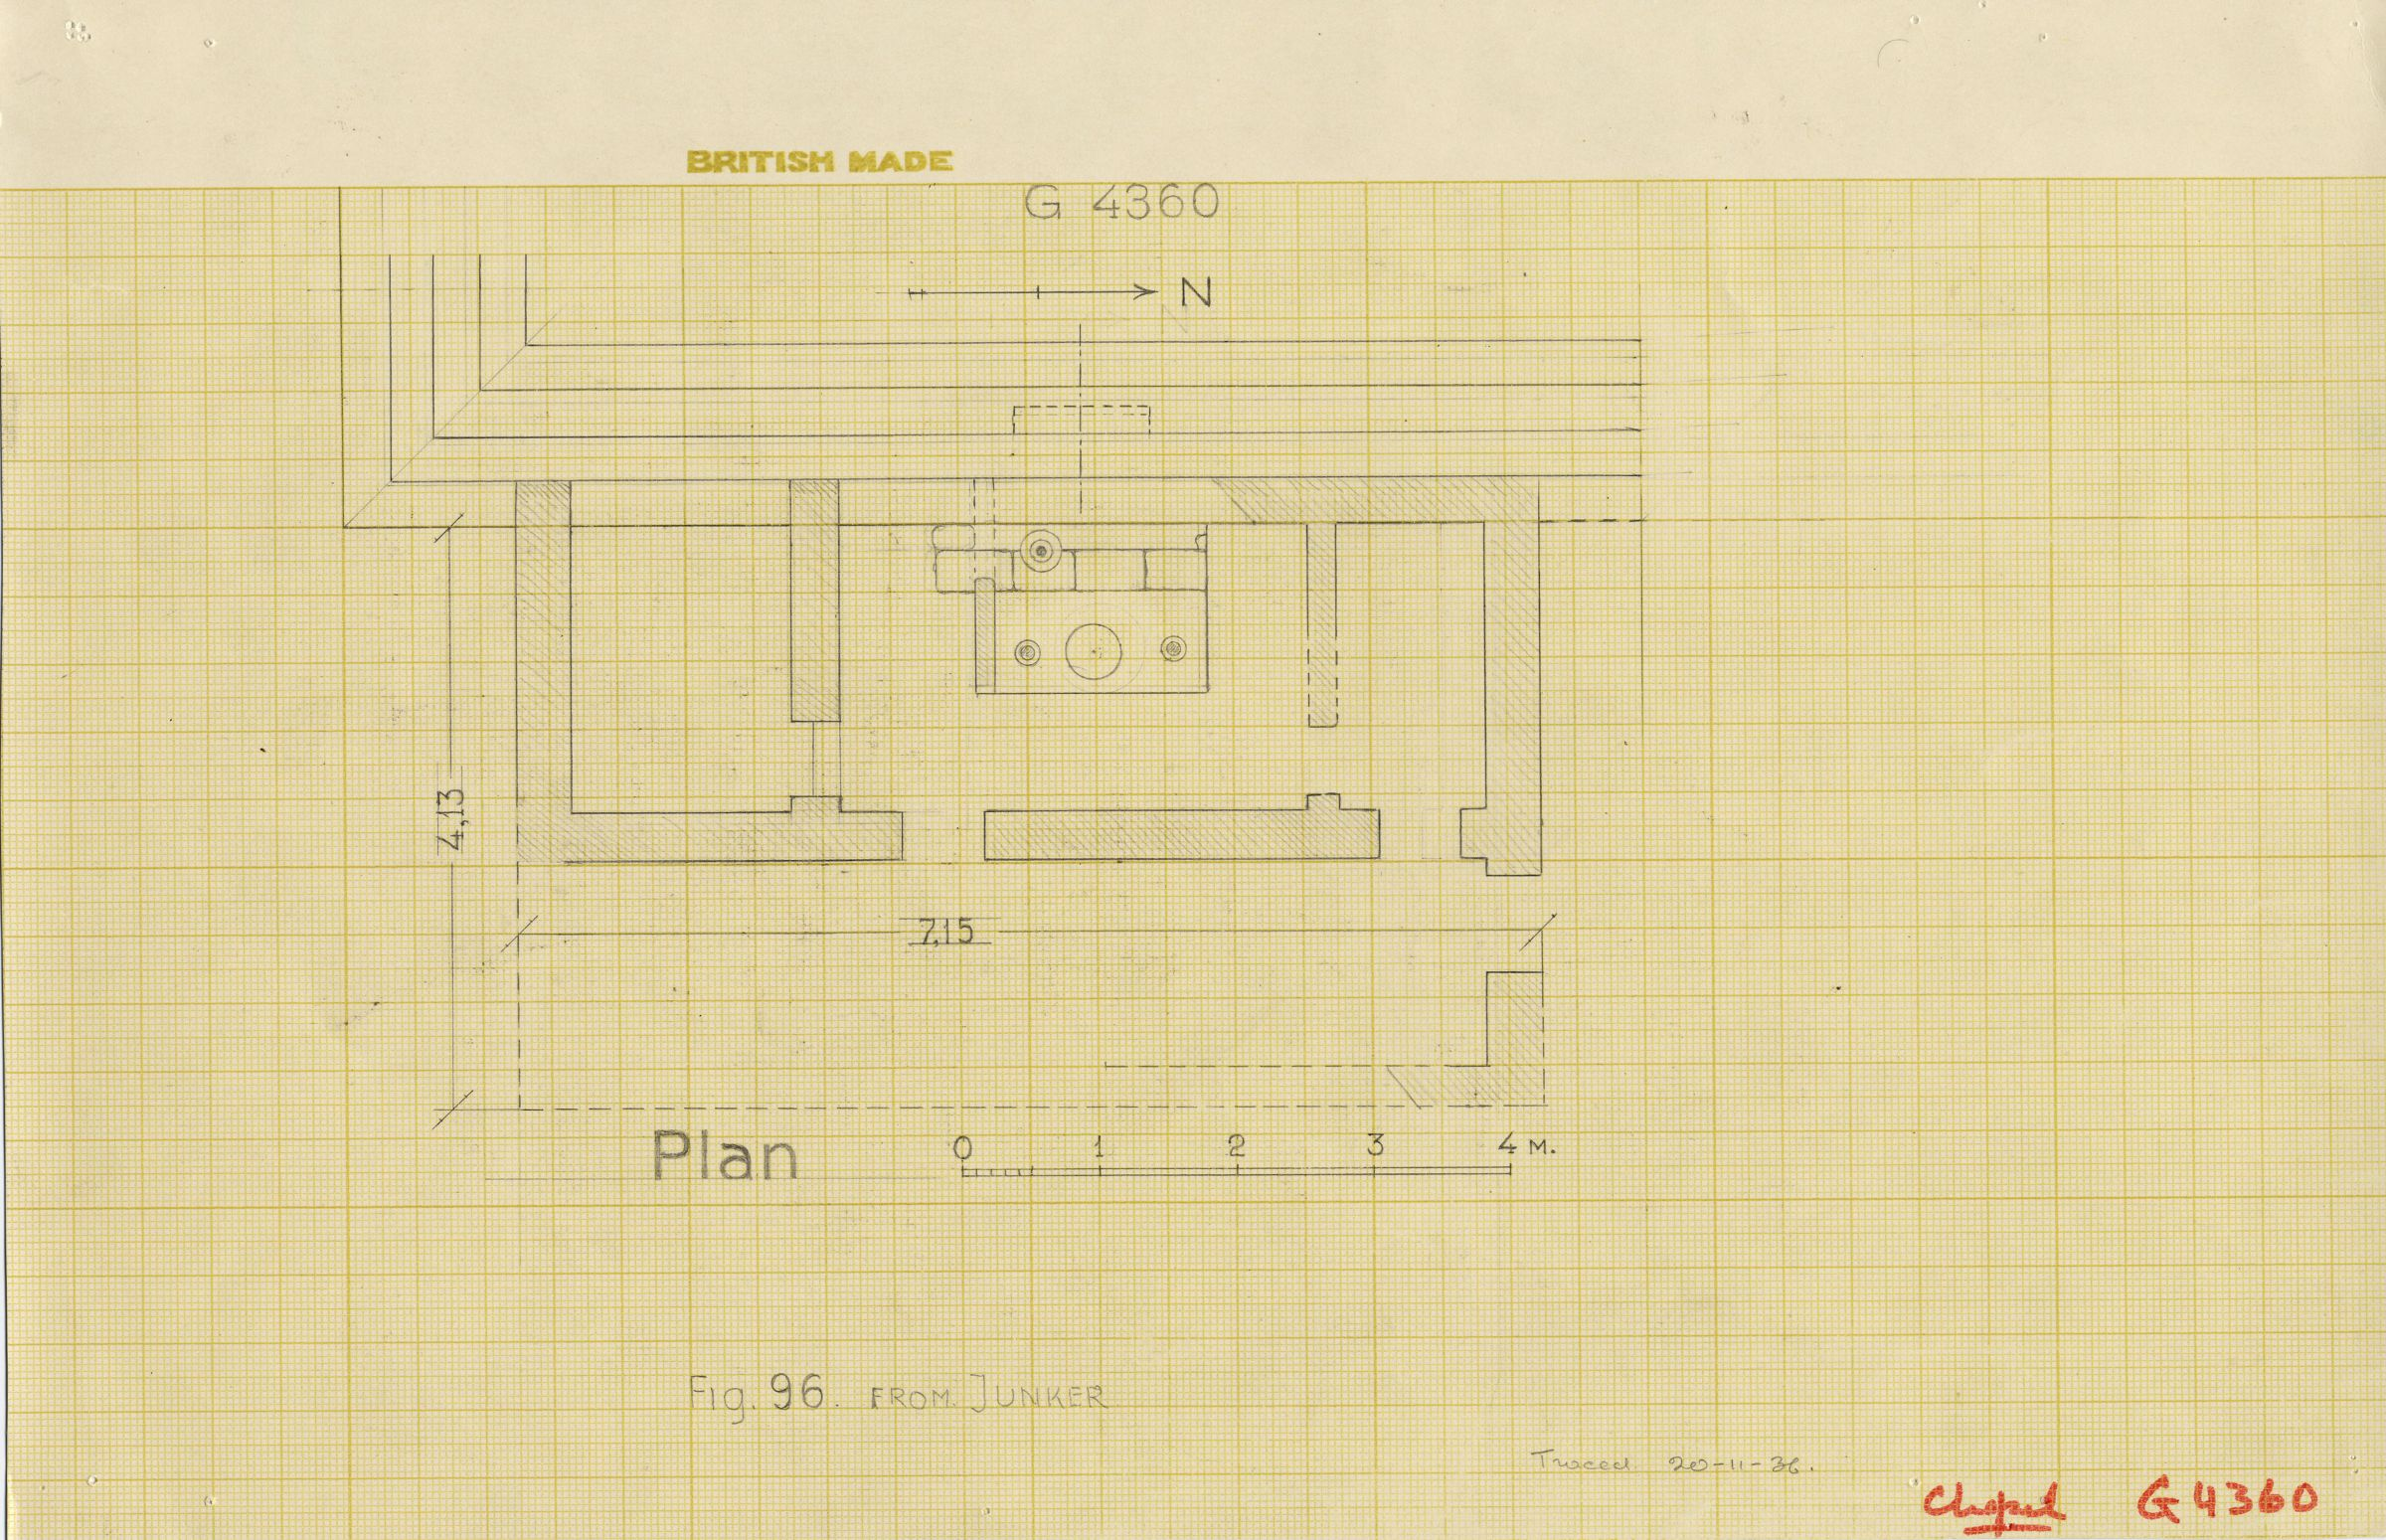 Maps and plans: G 4360, Plan of chapel